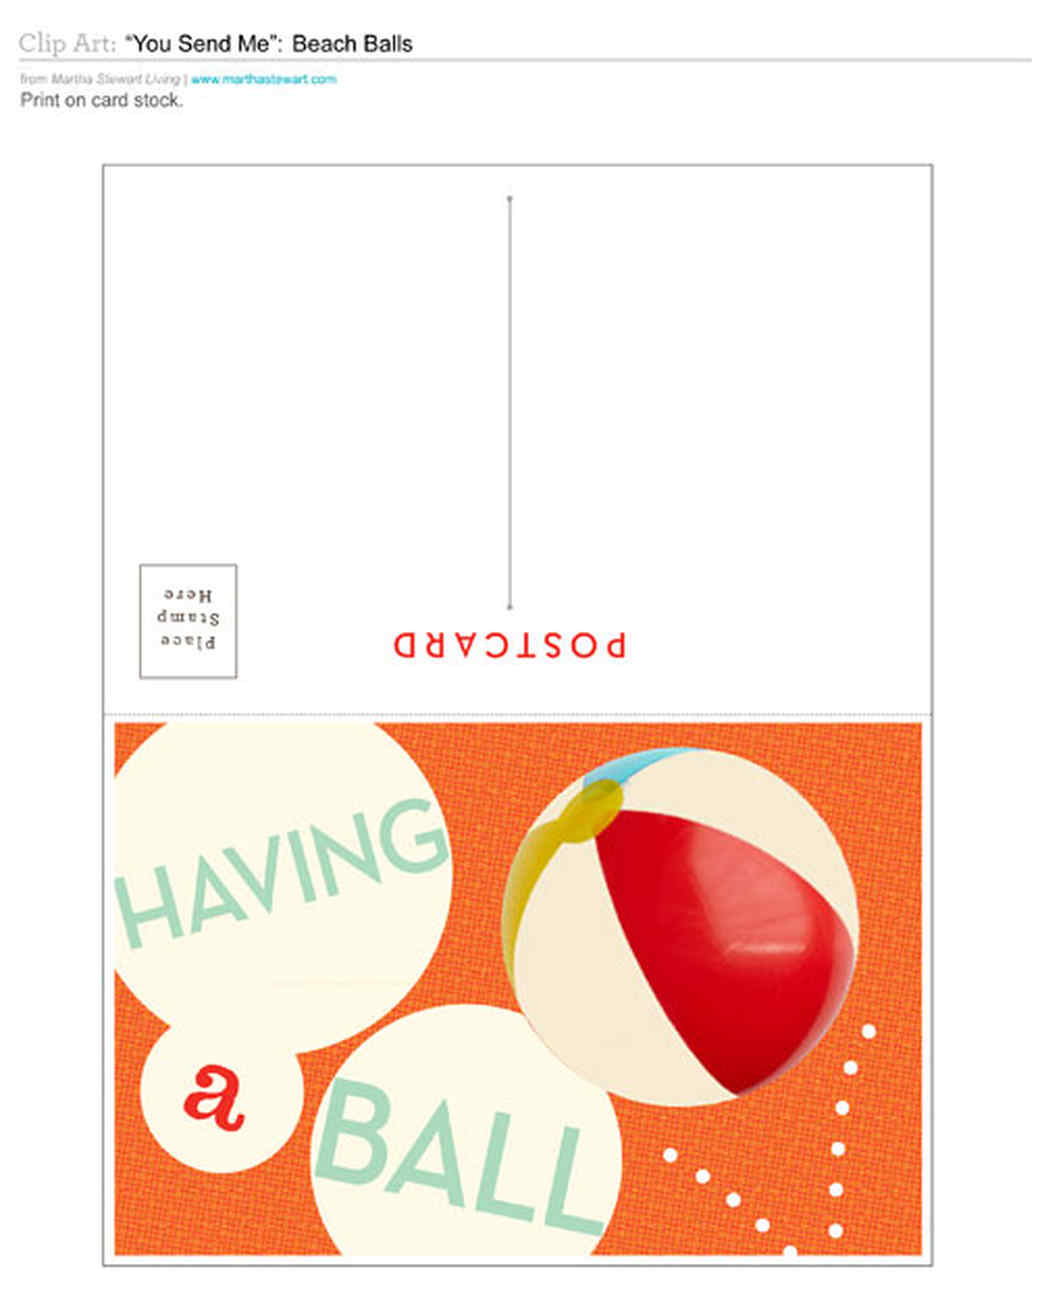 poastcards-ball-0811mld107292.jpg